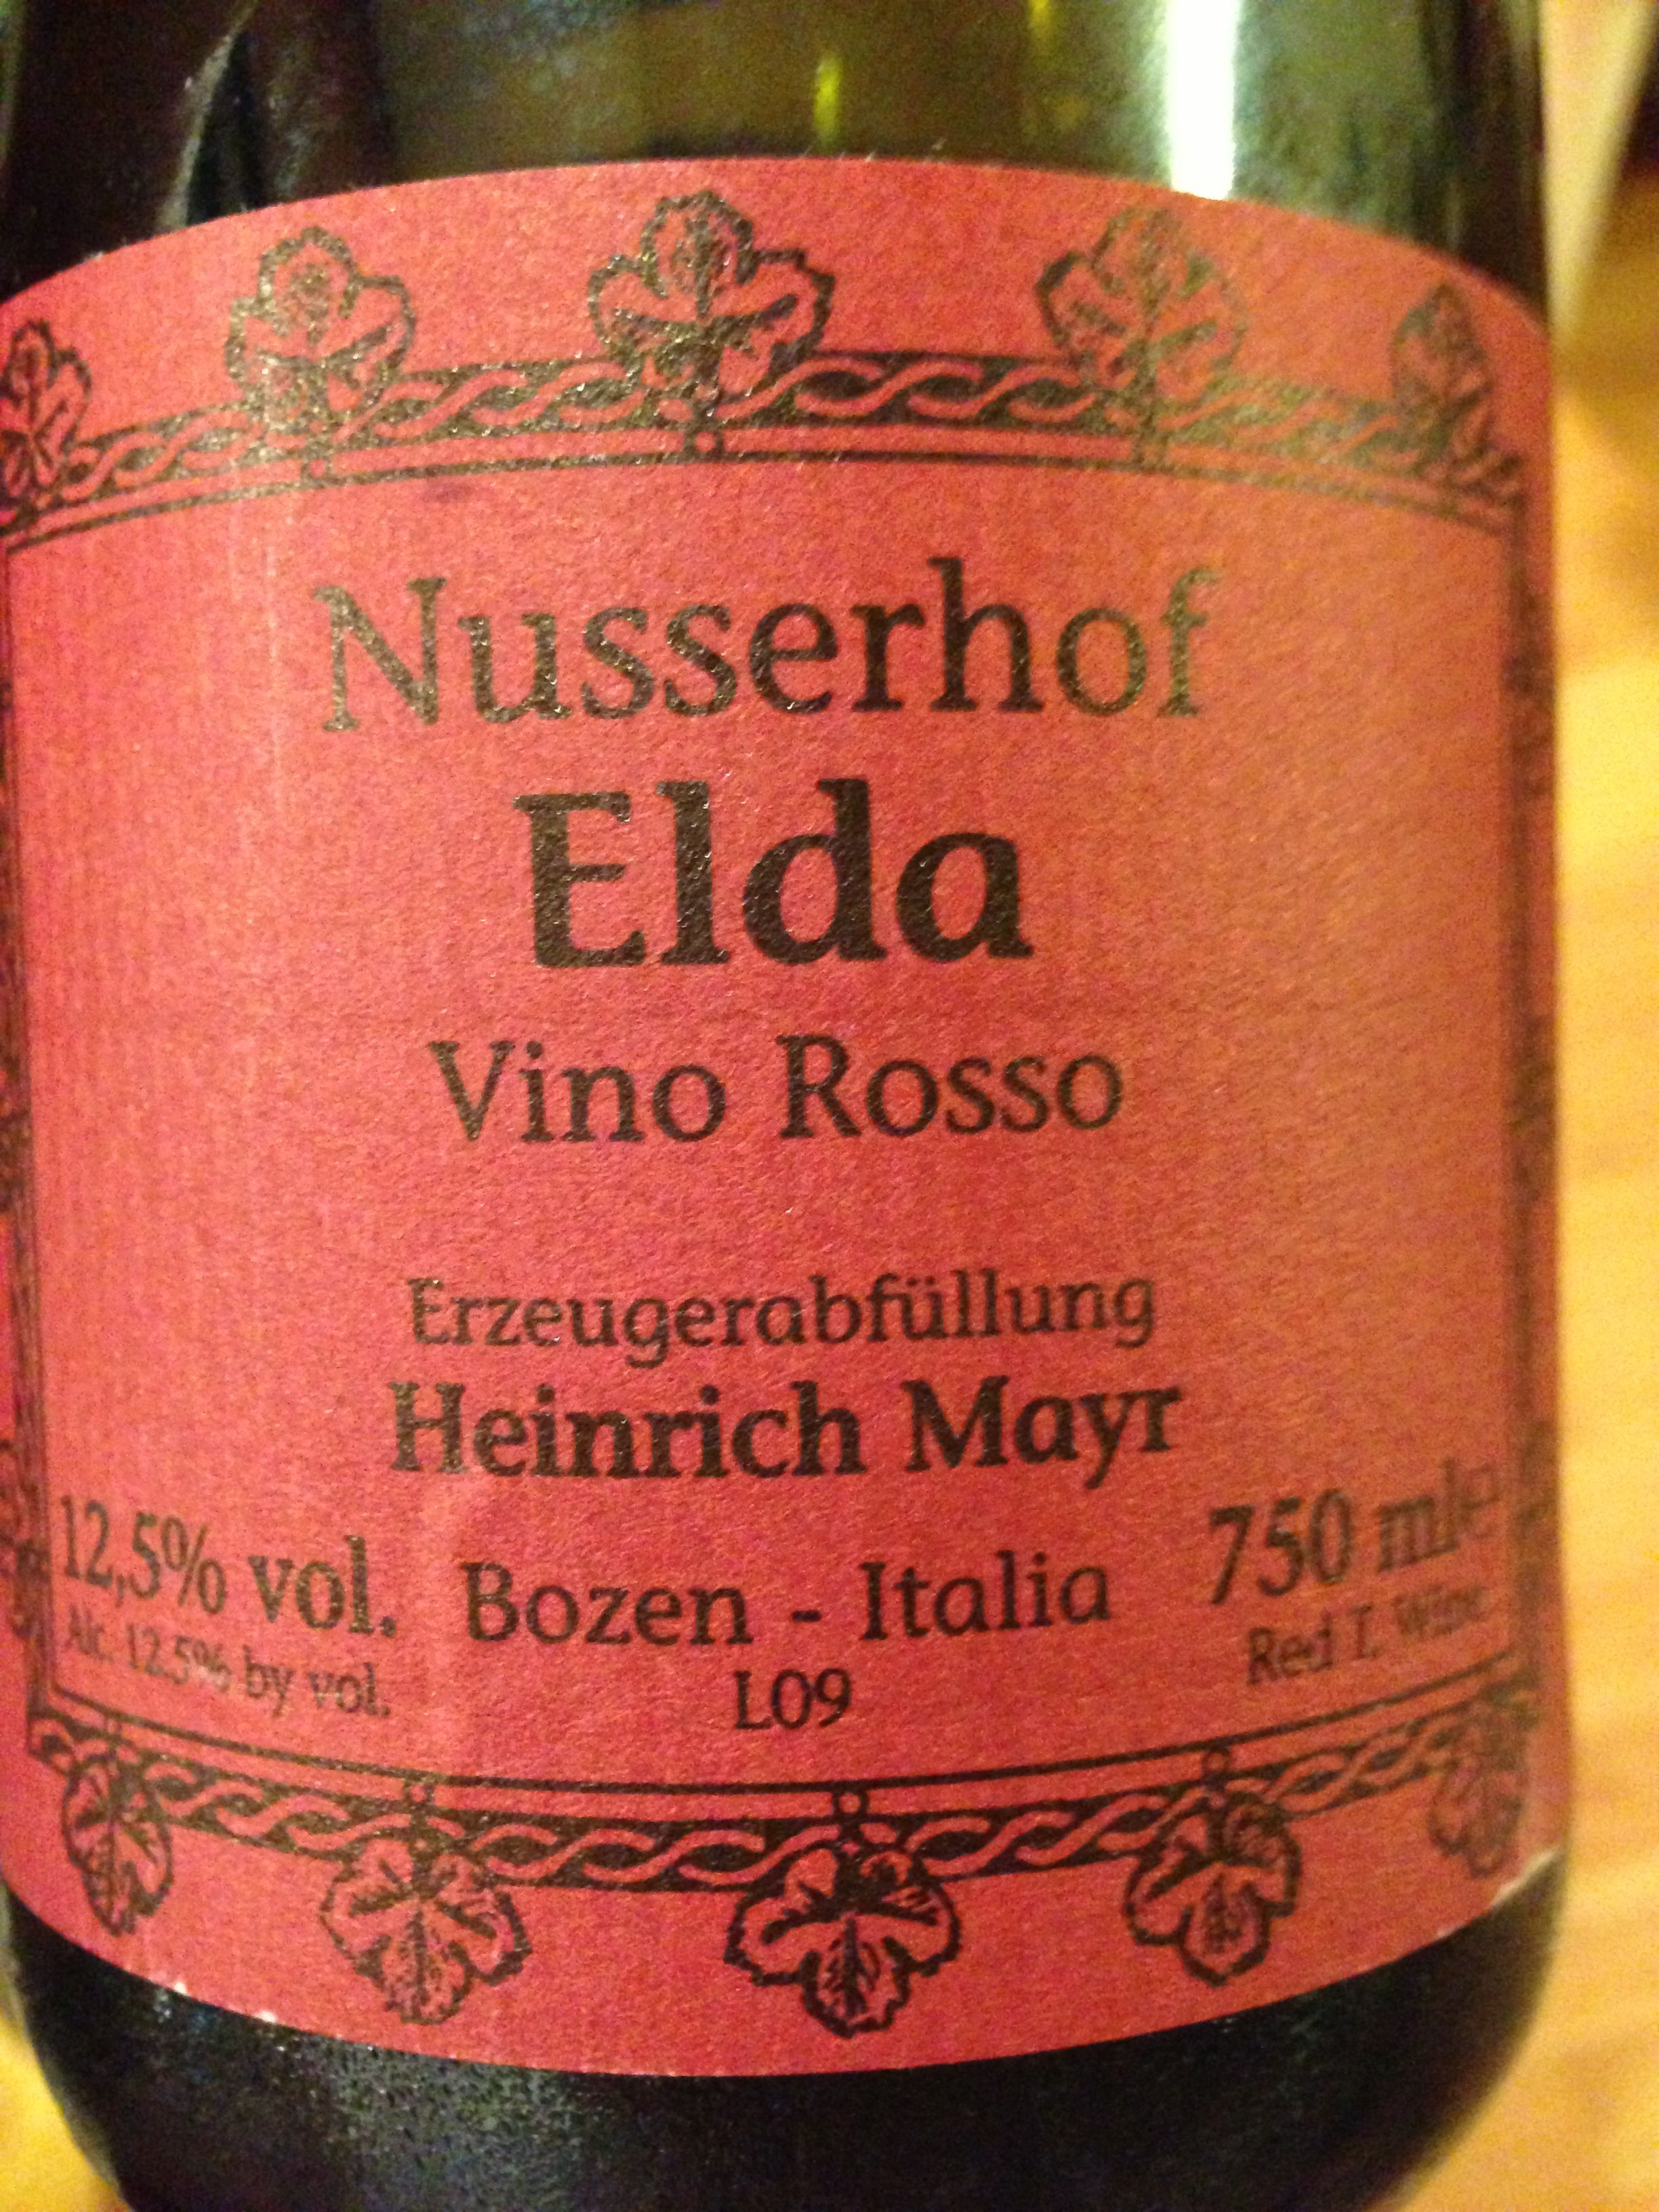 Very Interesting Wine From Alto Adige Not Sure What The Grape Is But It Has Nice Acidity And A Memorable Herbal Note How To Memorize Things Wines Wine Cooler